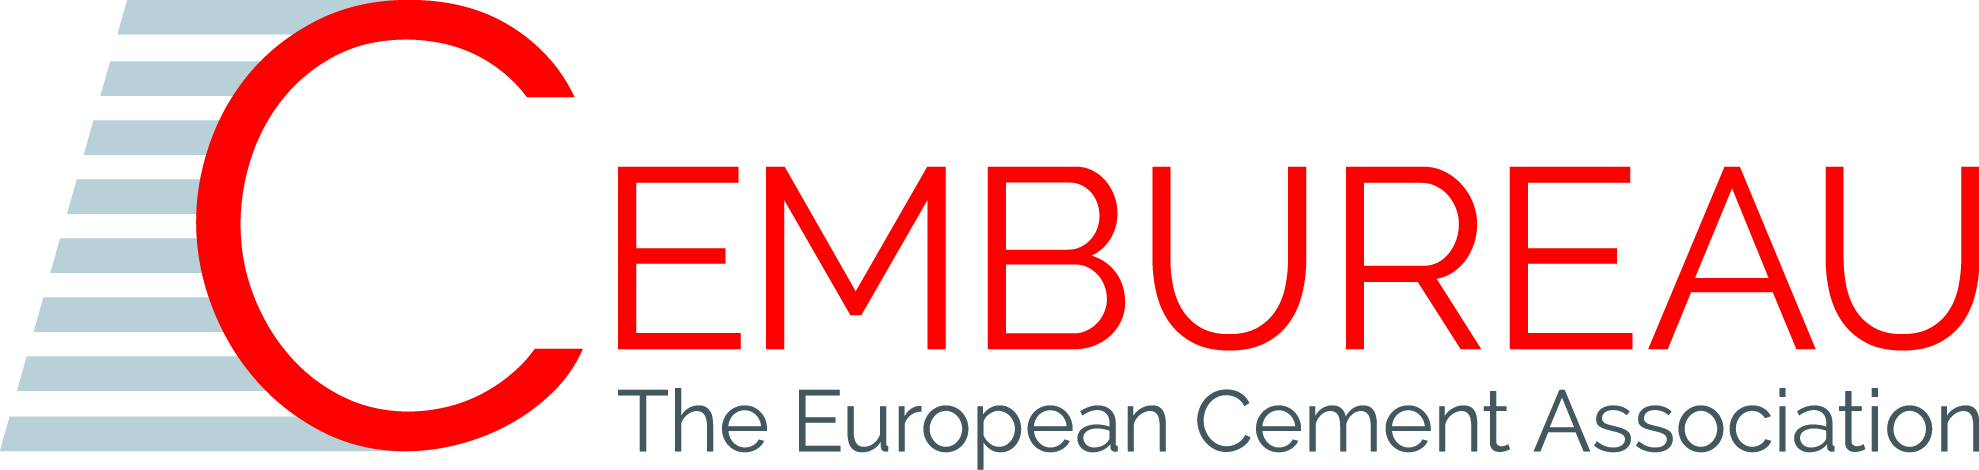 CEMBUREAU - European Cement Association